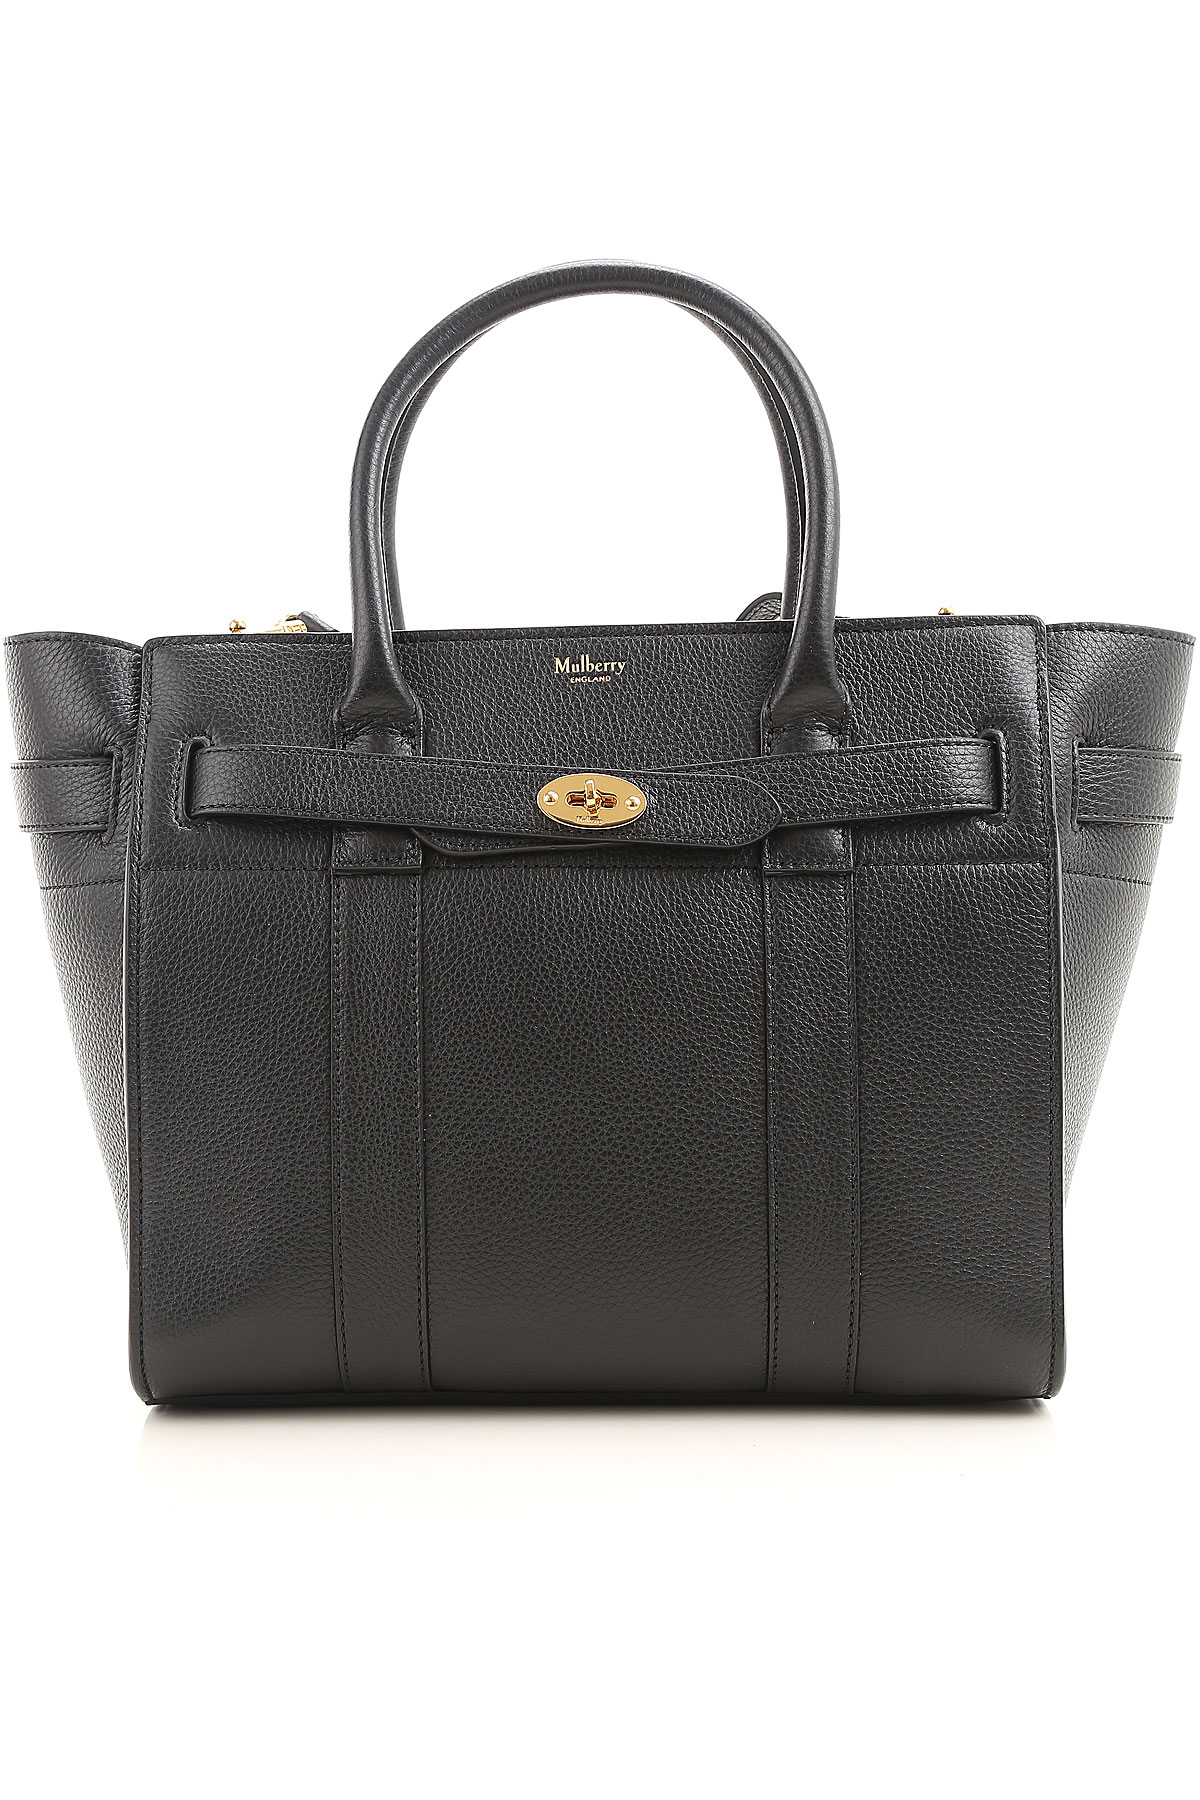 Mulberry Tote Bag On Sale, Black, Leather, 2019